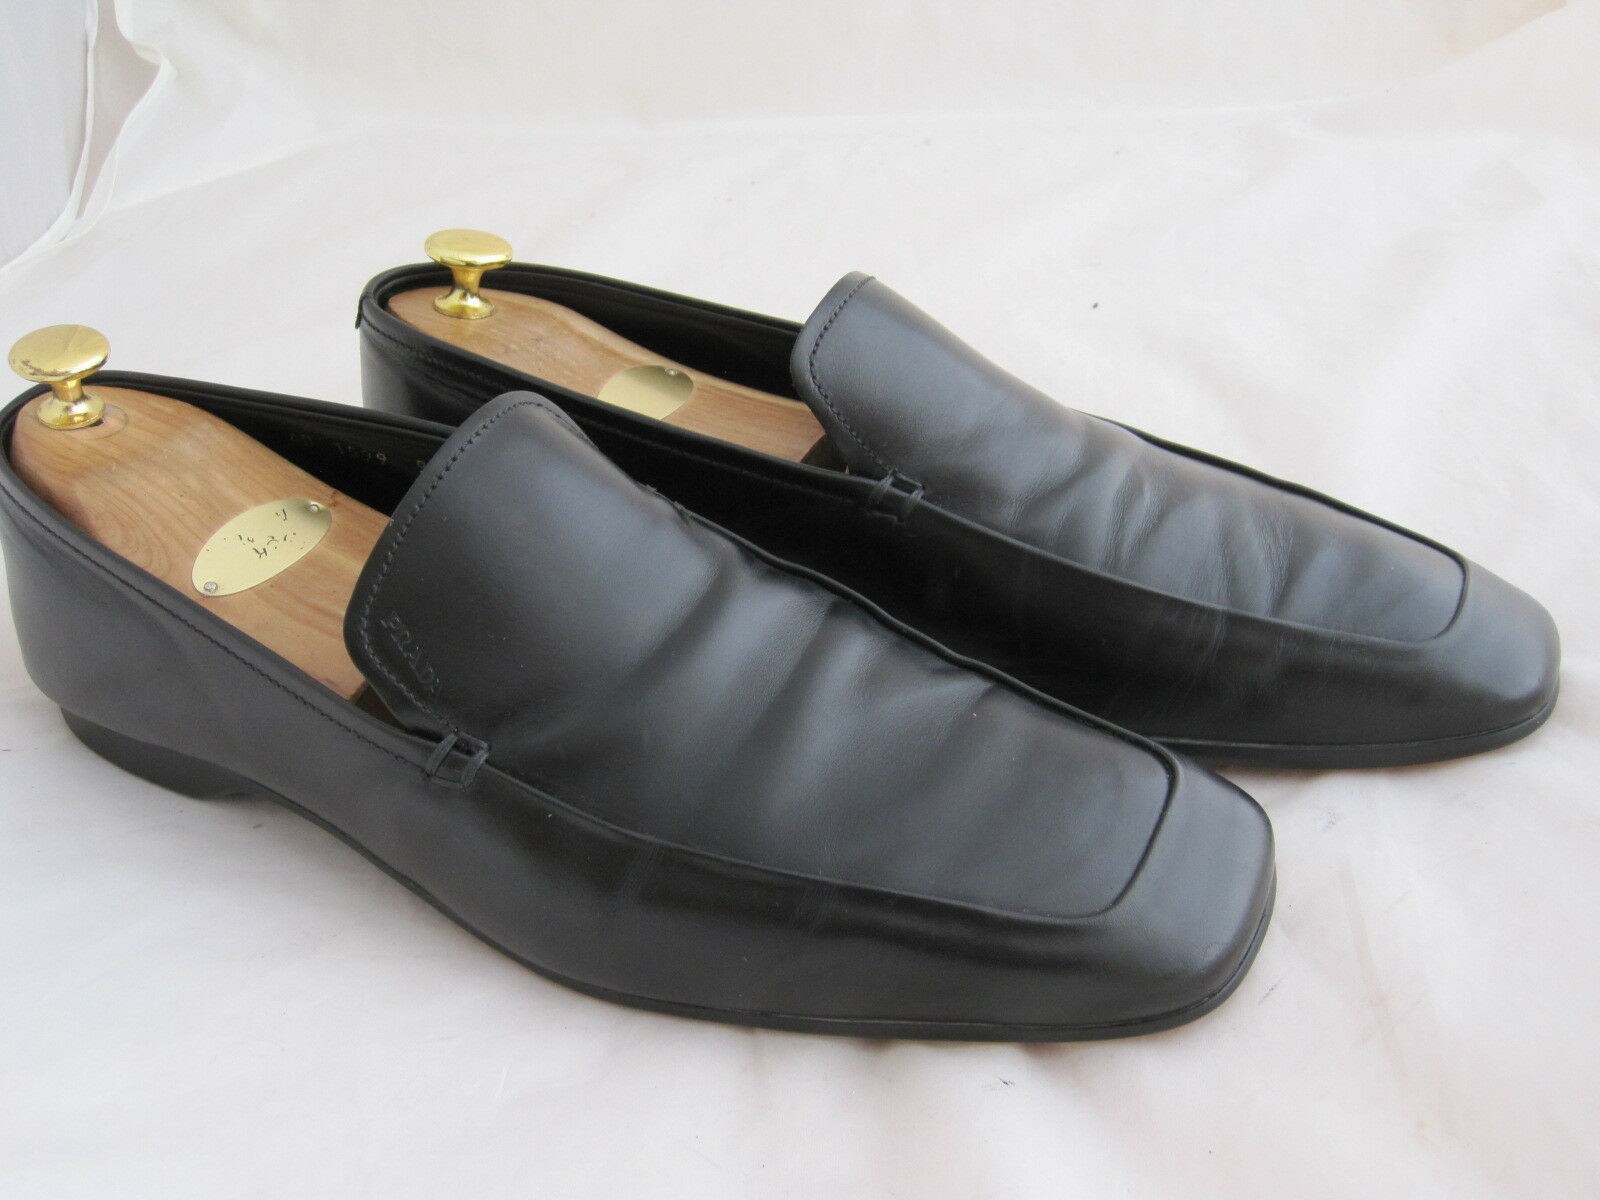 Prada Herrenloafer in 44 / UK 9,5 / Topzustand / Schwarz/ NP